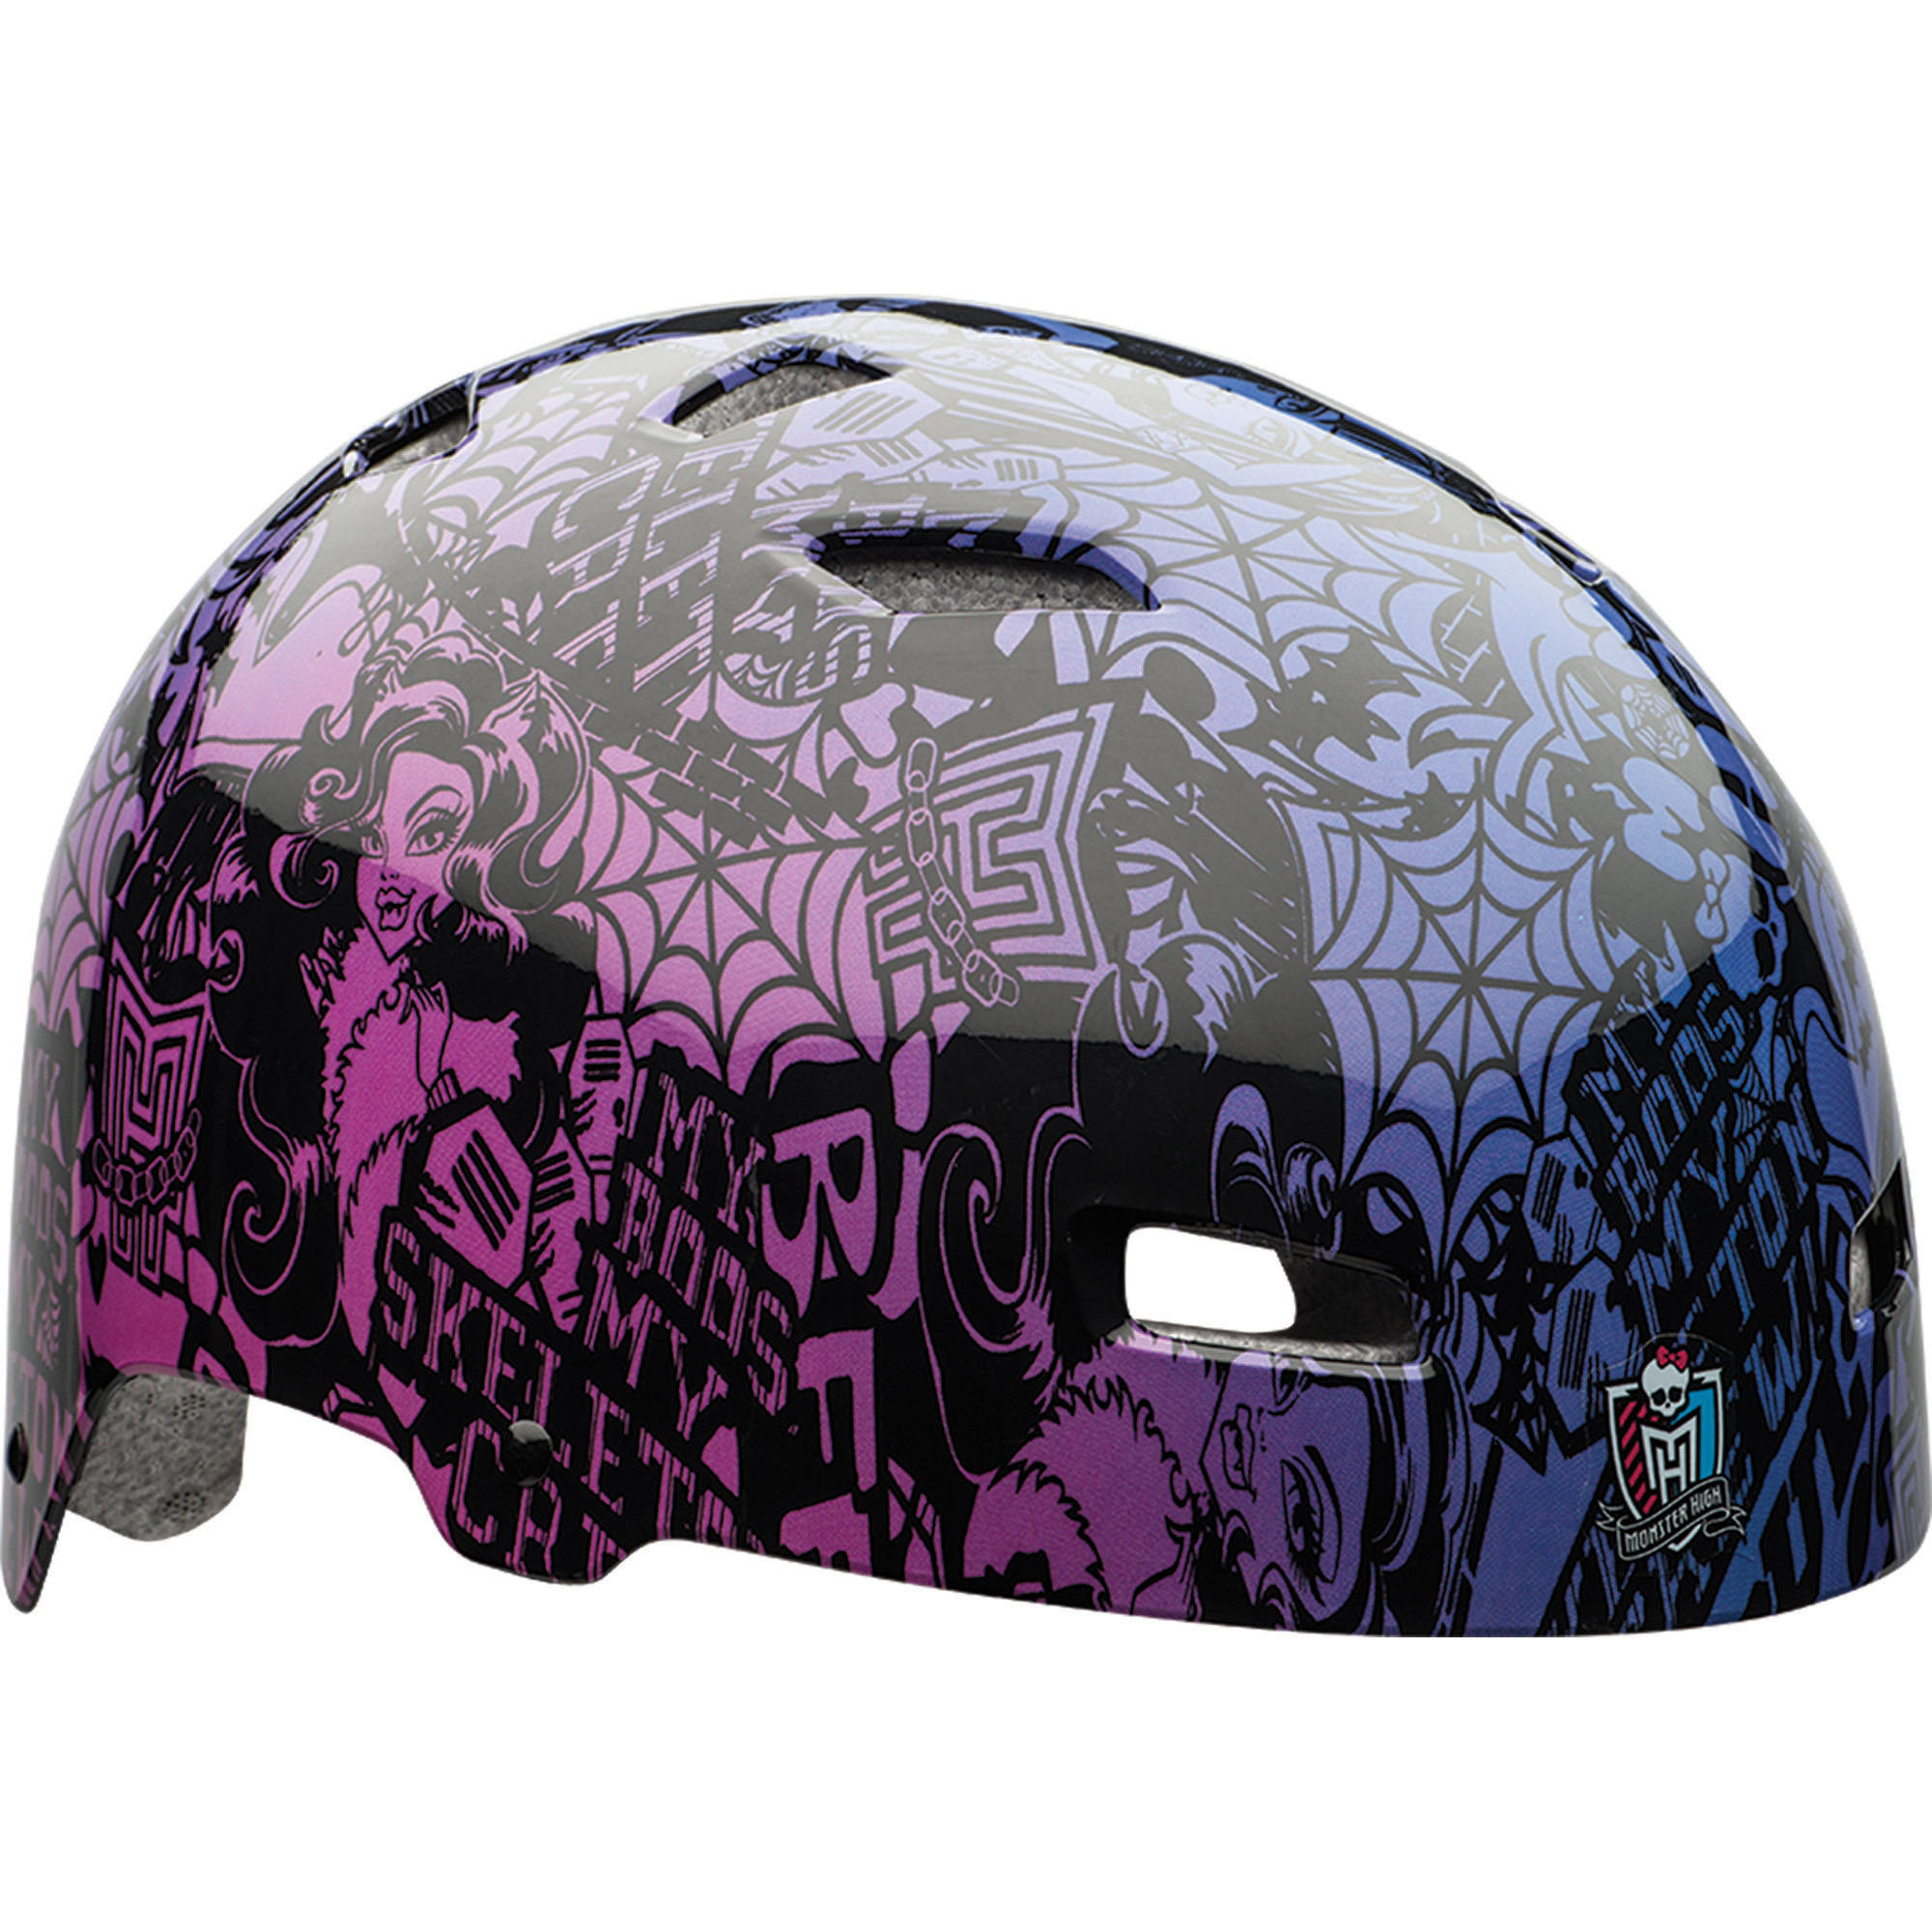 Bell Sports Monster High Youth Multisport Helmet, Black/Purple